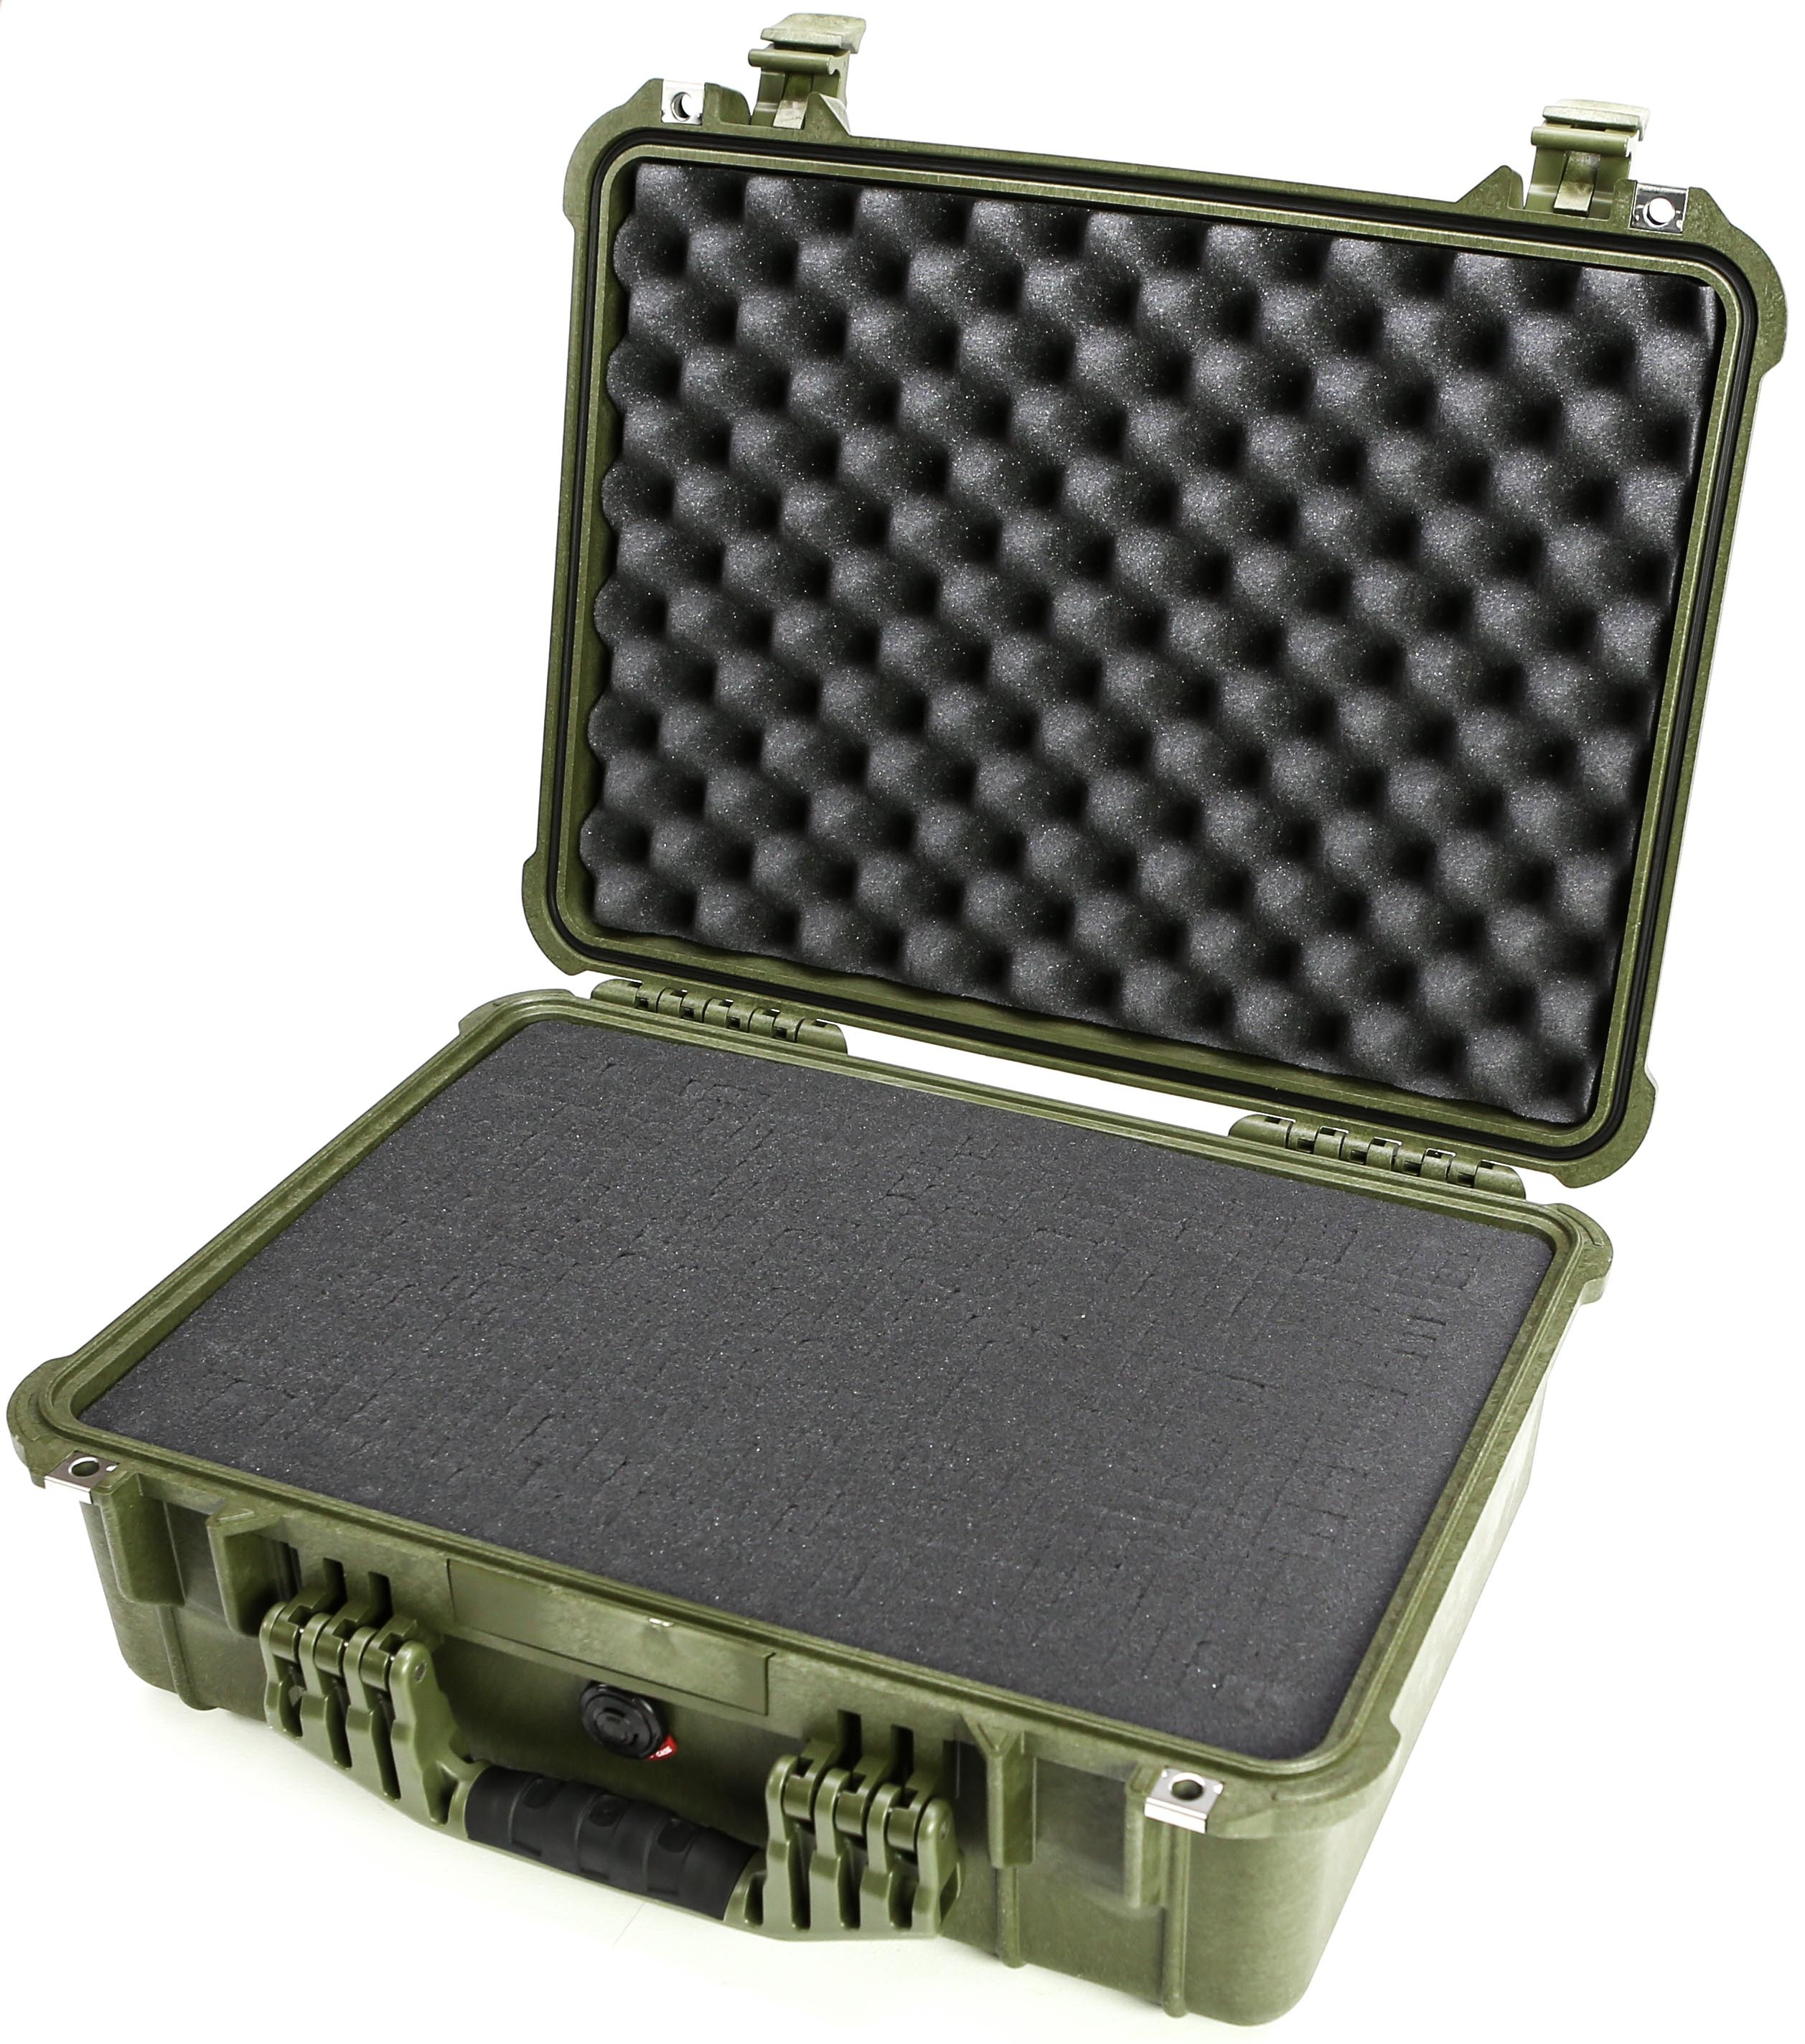 Pelican 1520 Case (Olive Drab Green)